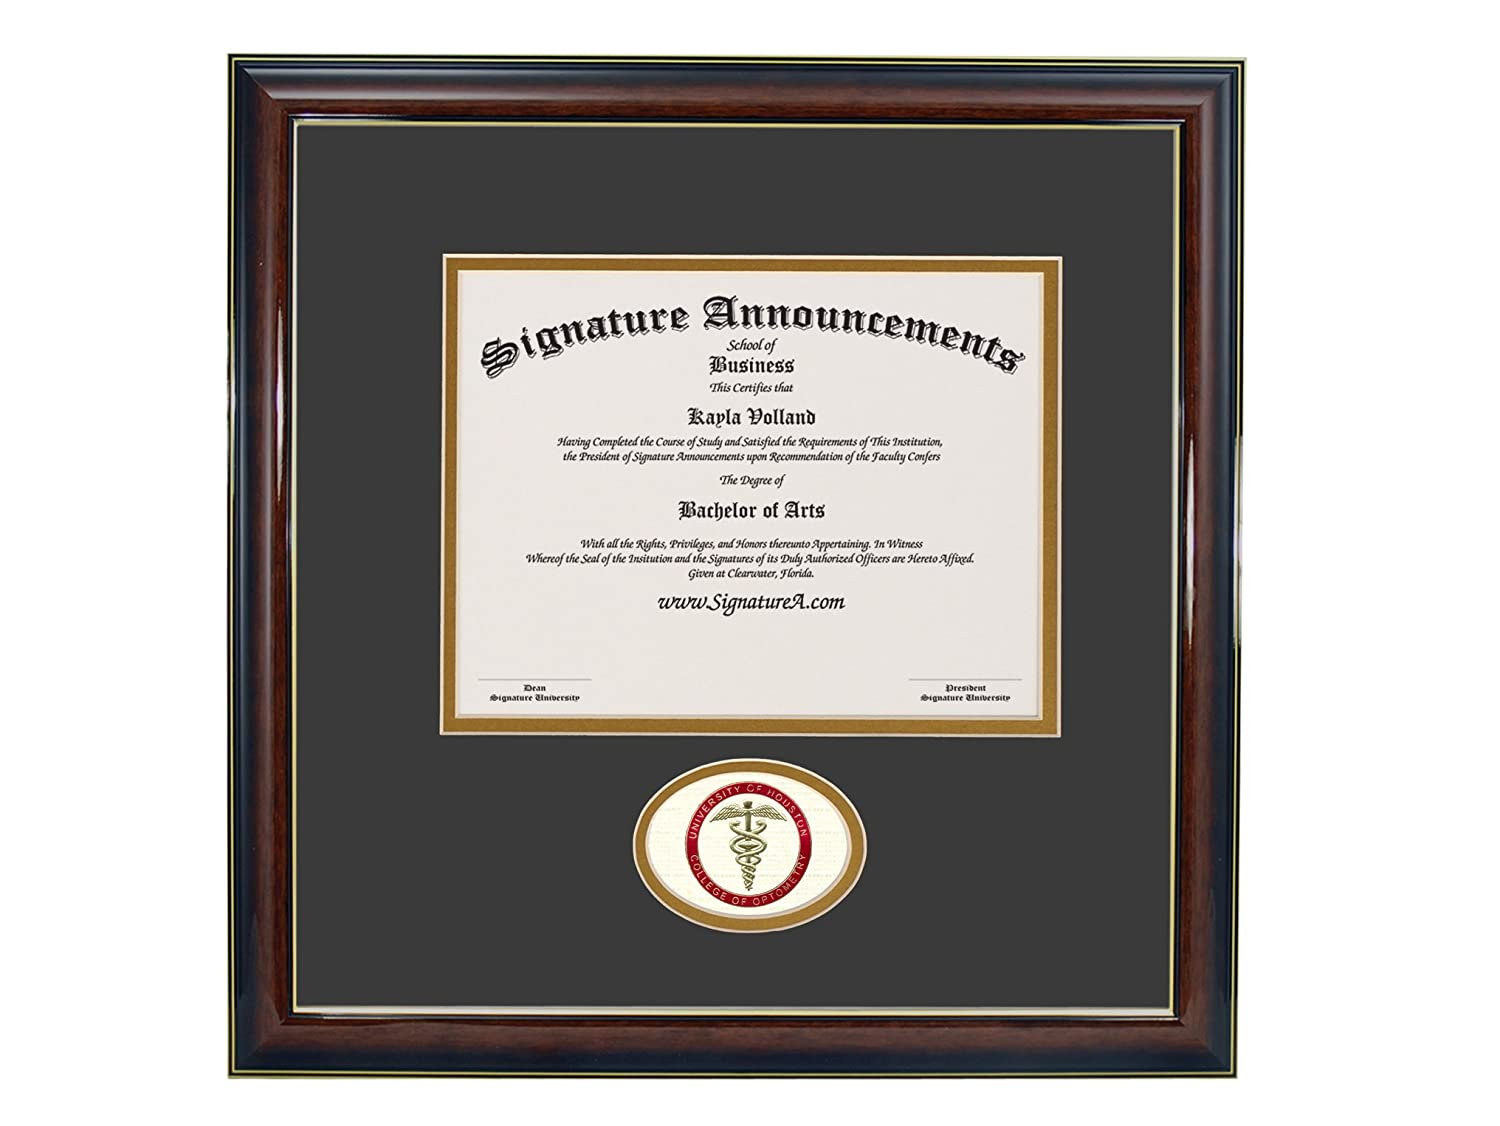 Signature Announcements University-of-Houston-College-of-Optometry Sculpted Foil Seal Graduation Diploma Frame 16 x 16 Gloss Mahogany with Gold Accent